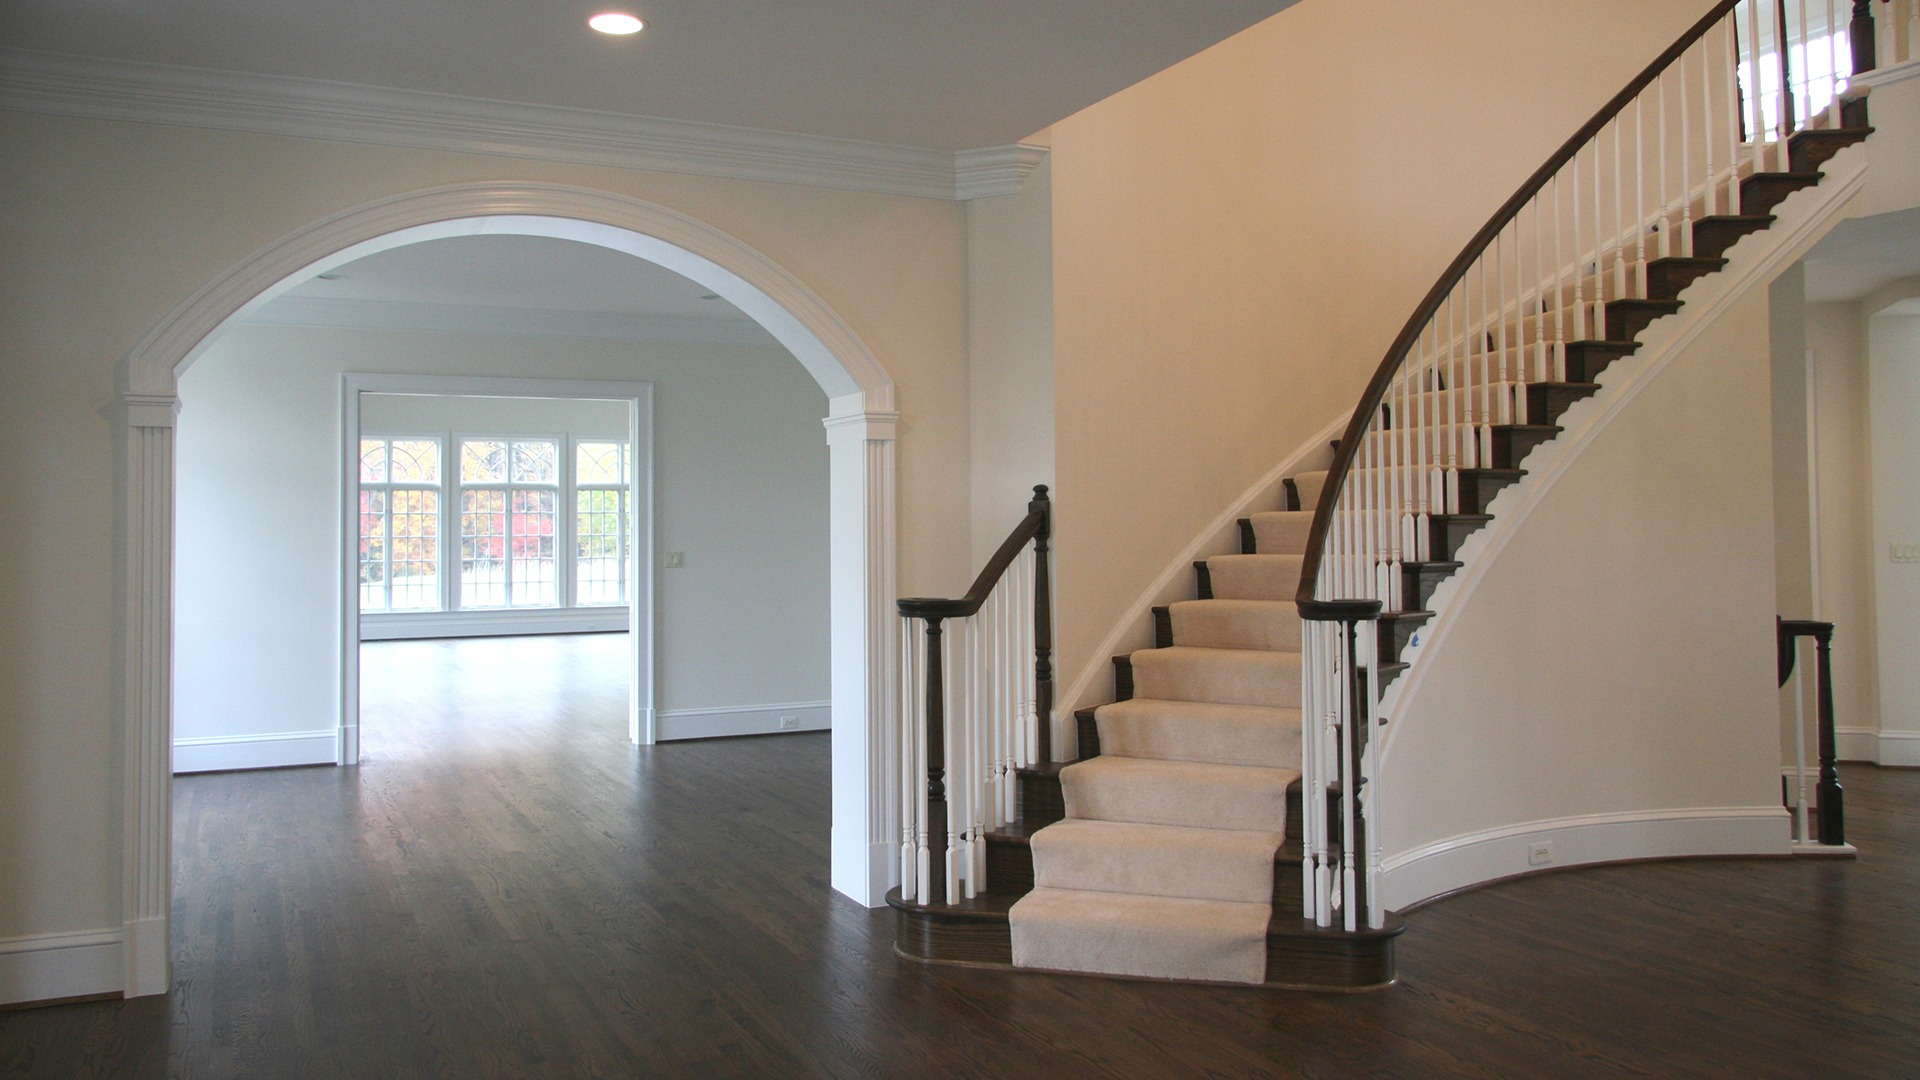 Grovemont Wentworth - Foyer into Living Room